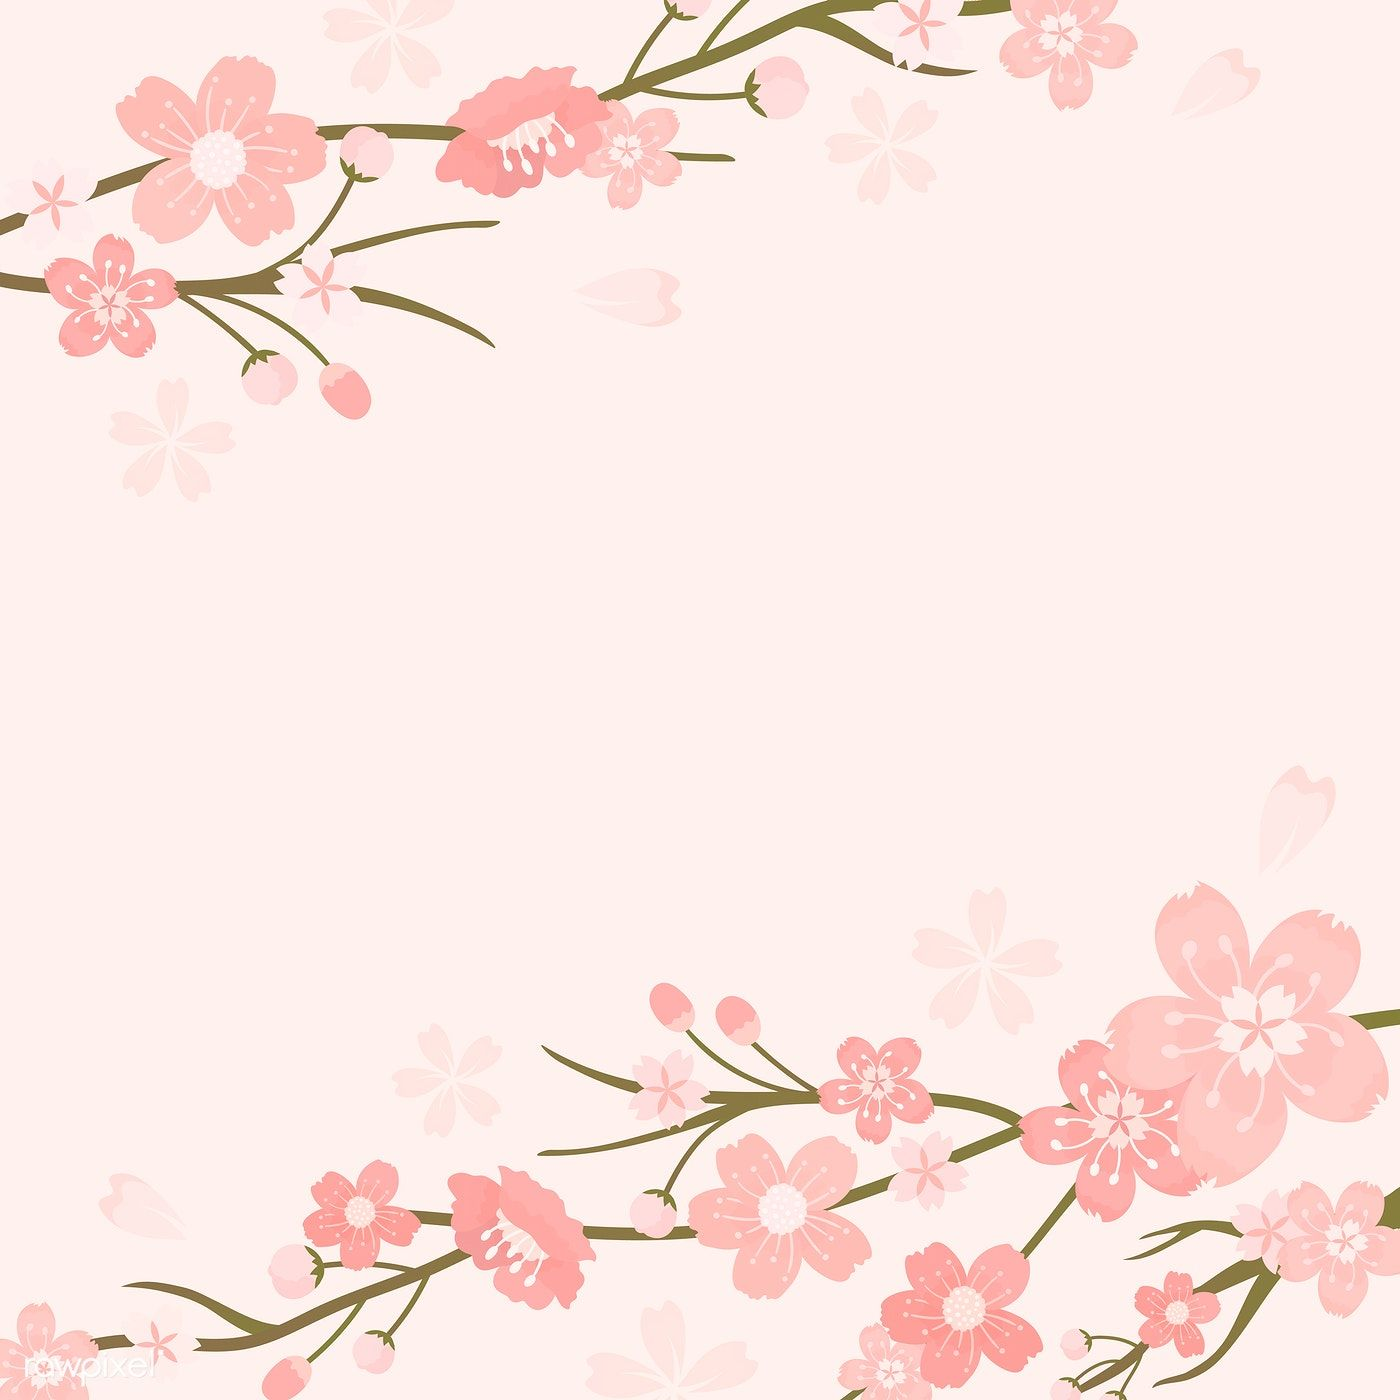 Pink Cherry Blossom Blank Background Vectot Free Image By Rawpixel Com Manotang Cherry Blossom Background Flower Background Wallpaper Cherry Blossom